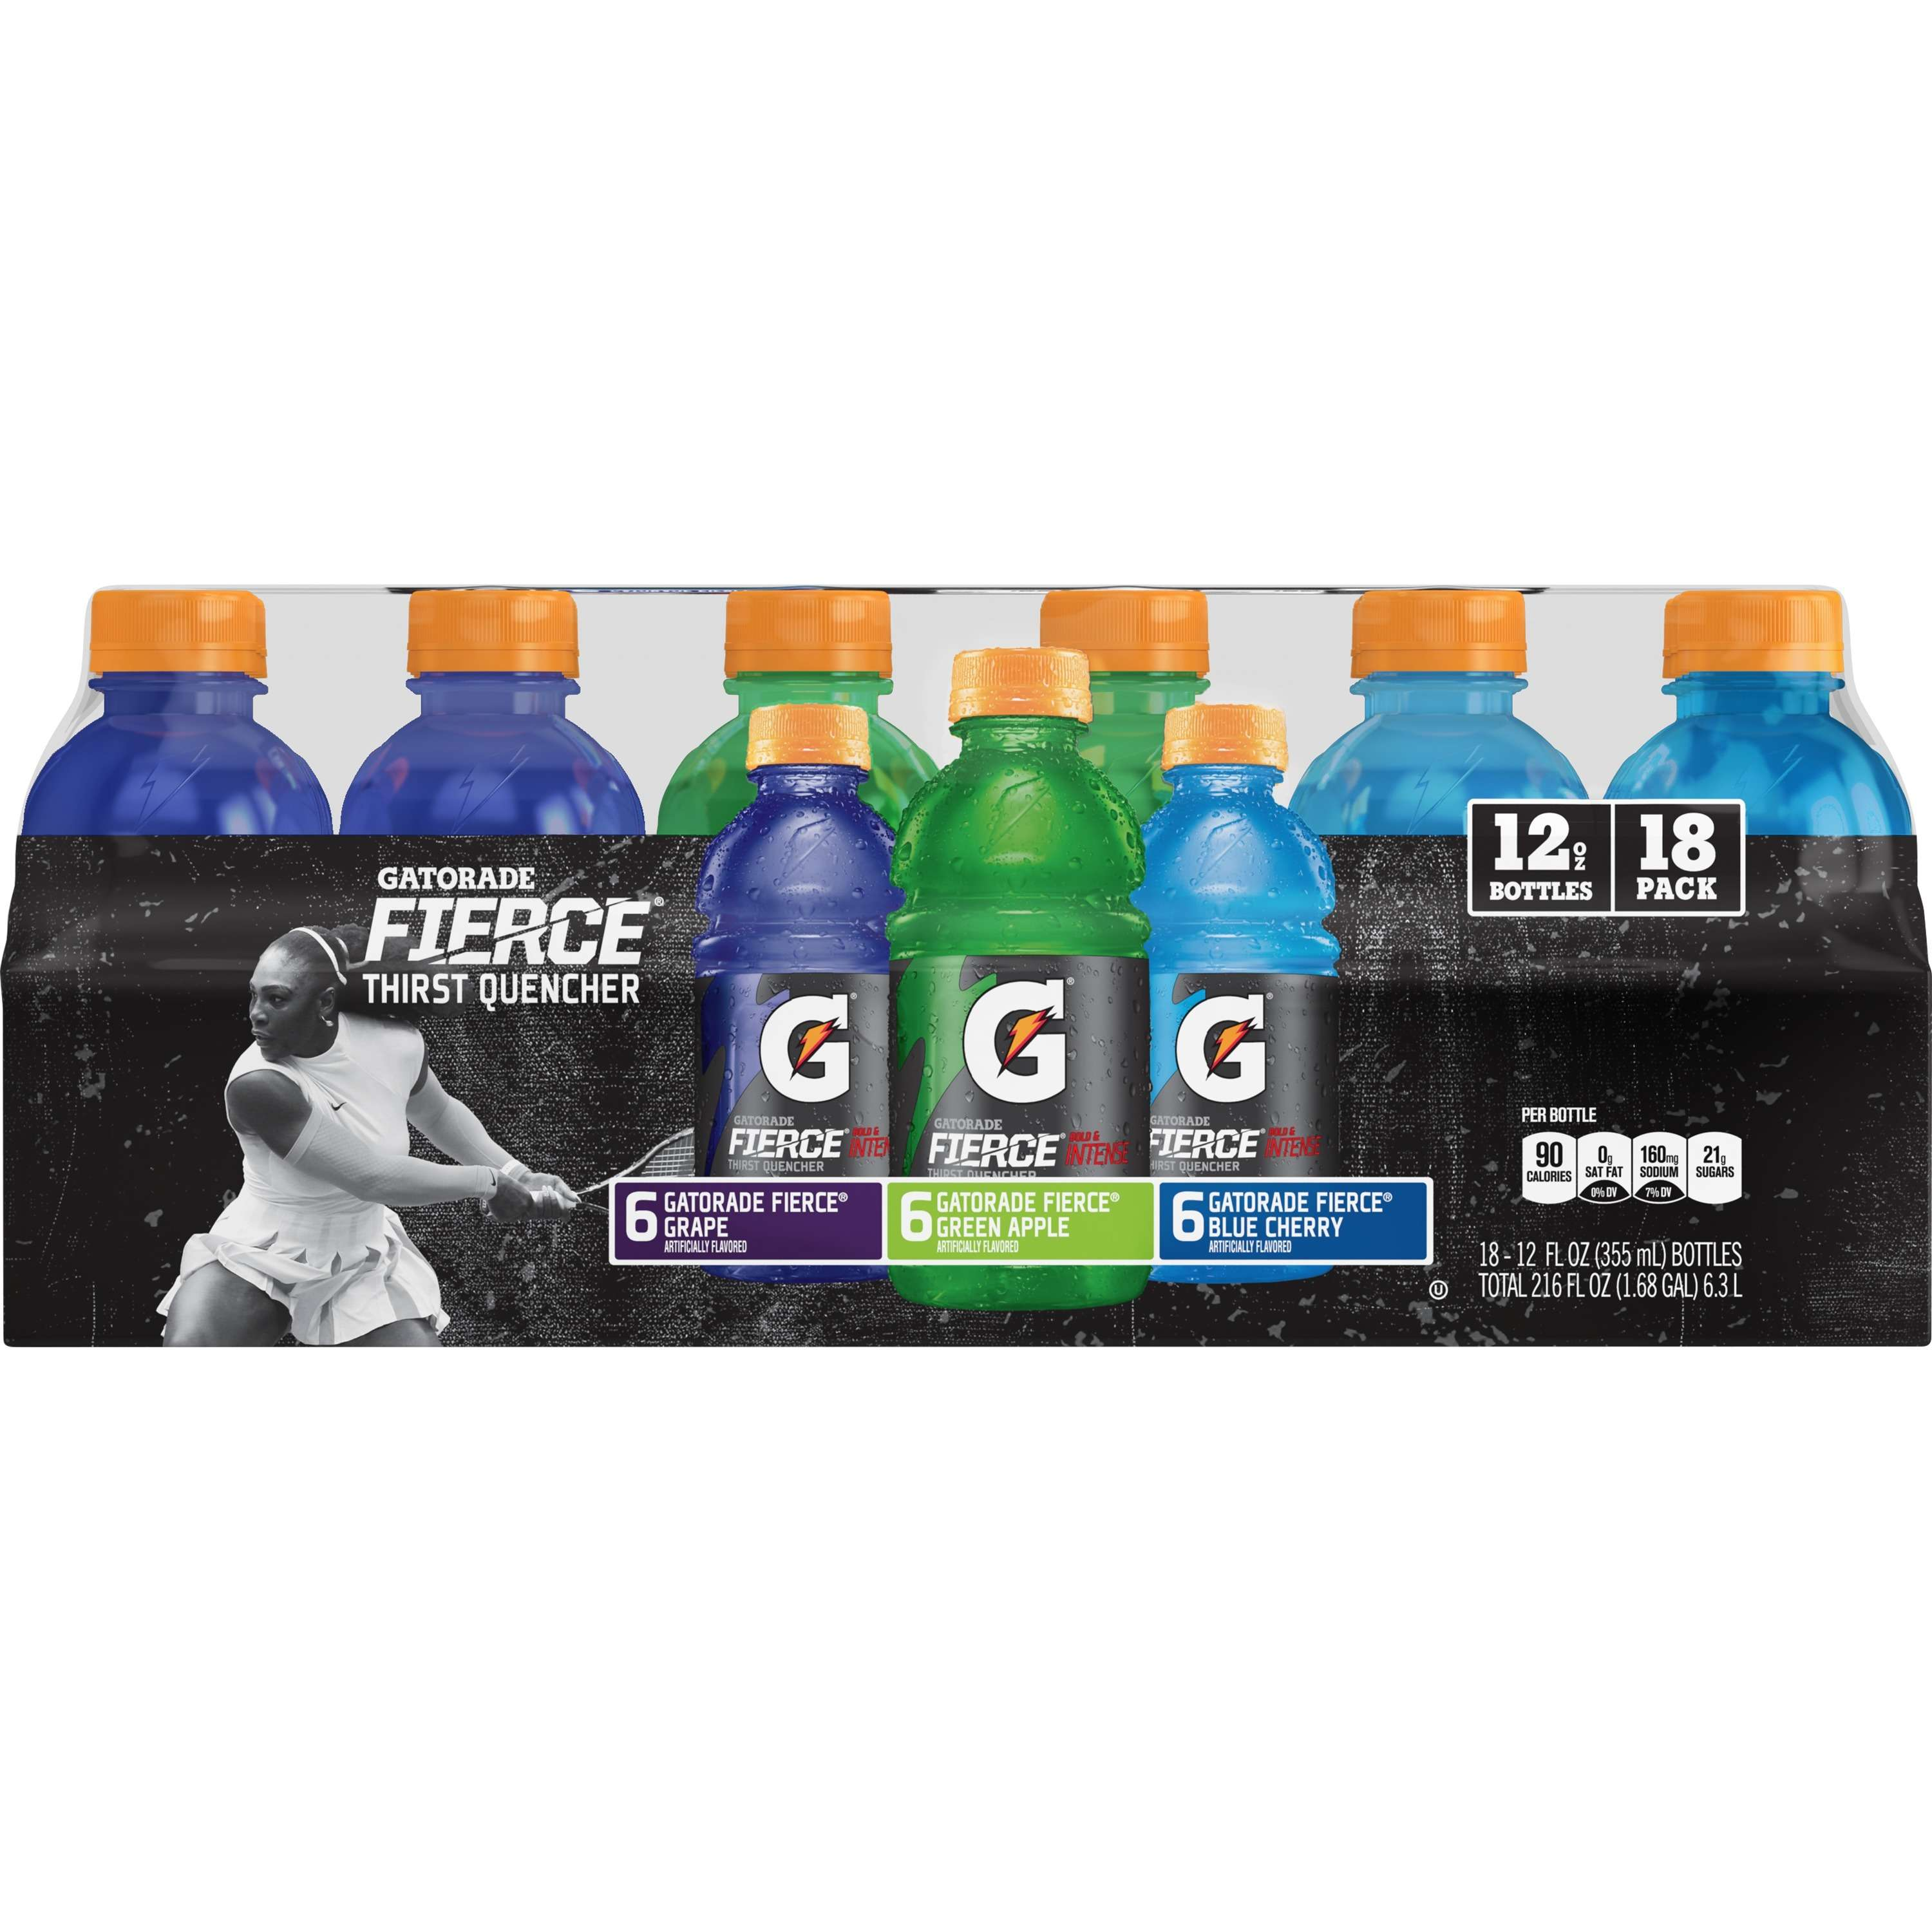 Gatorade Thirst Quencher Fierce Sports Drink, Variety Pack, 12 Fl Oz, 18 Ct